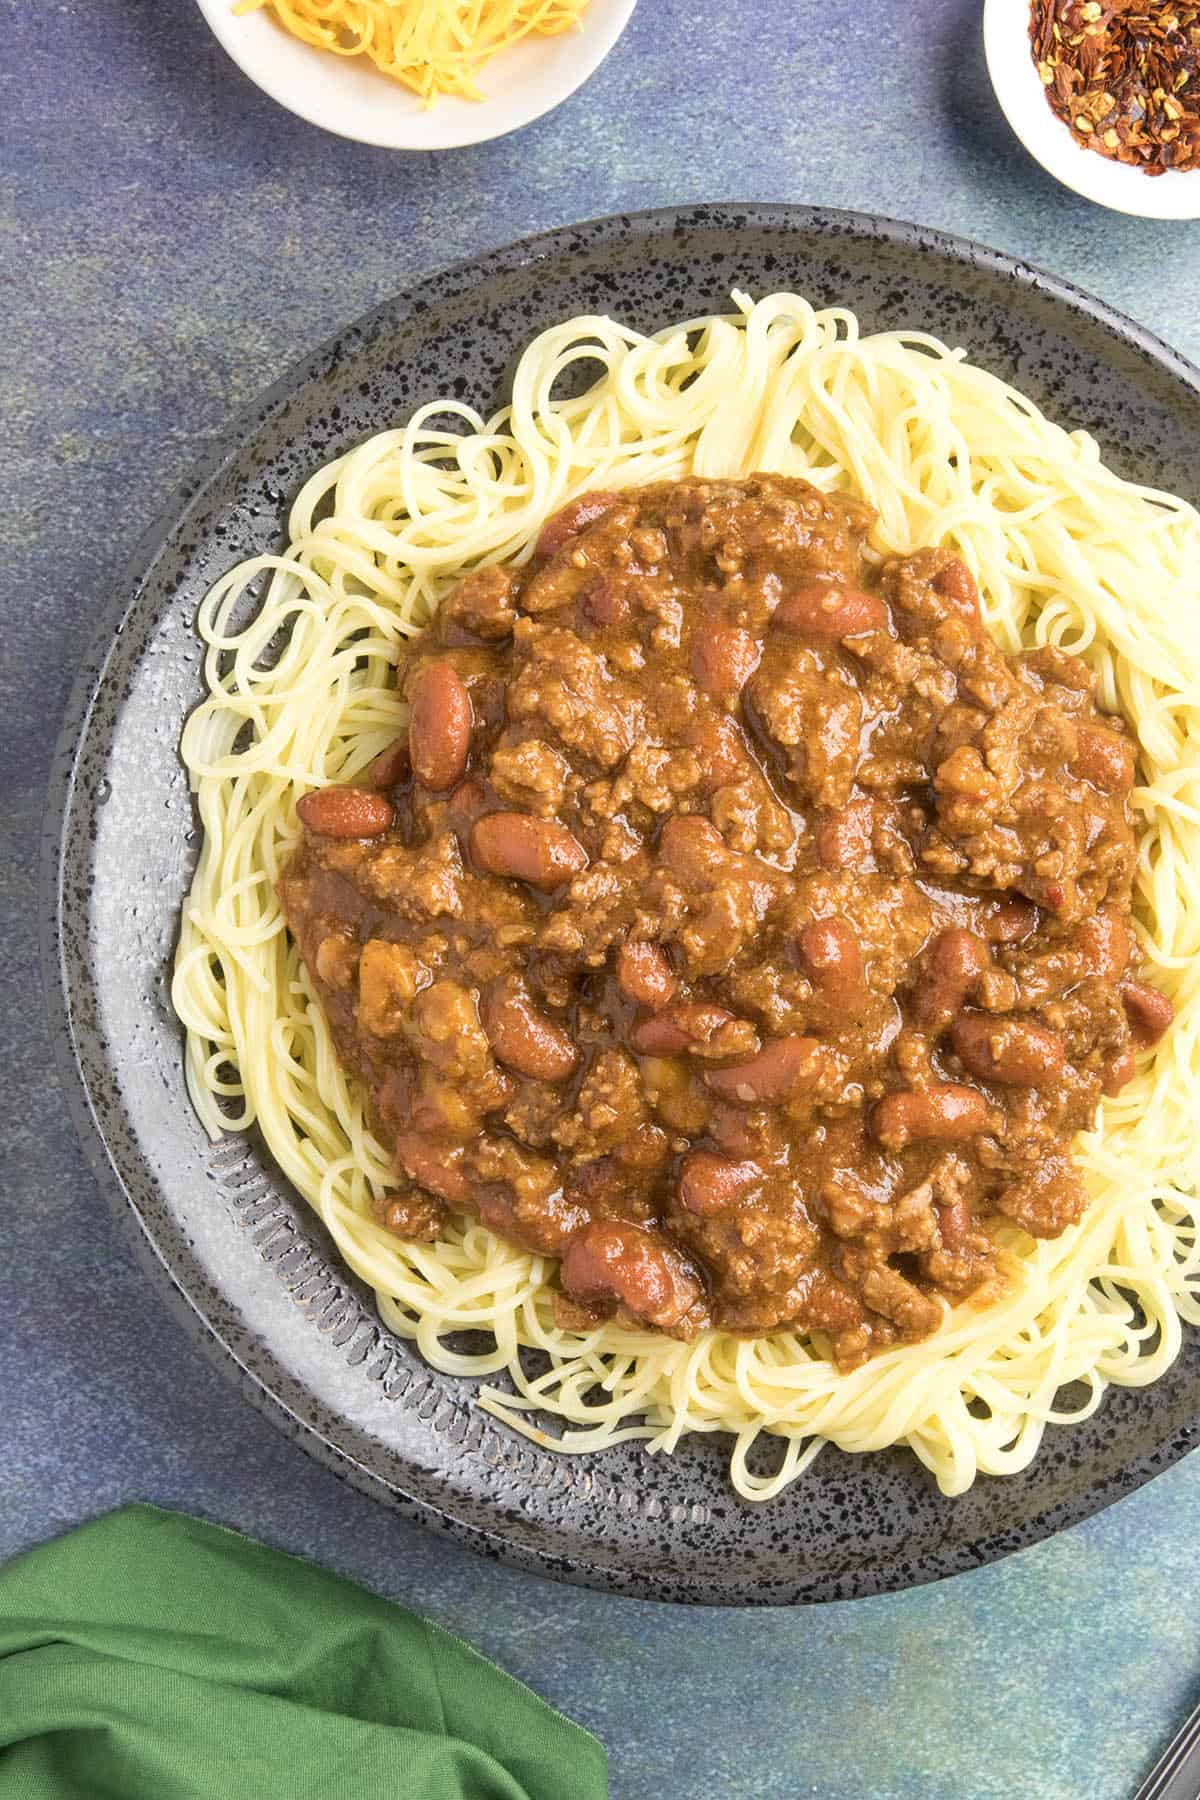 Cincinnati Chili on a plate of noodles, ready to eat